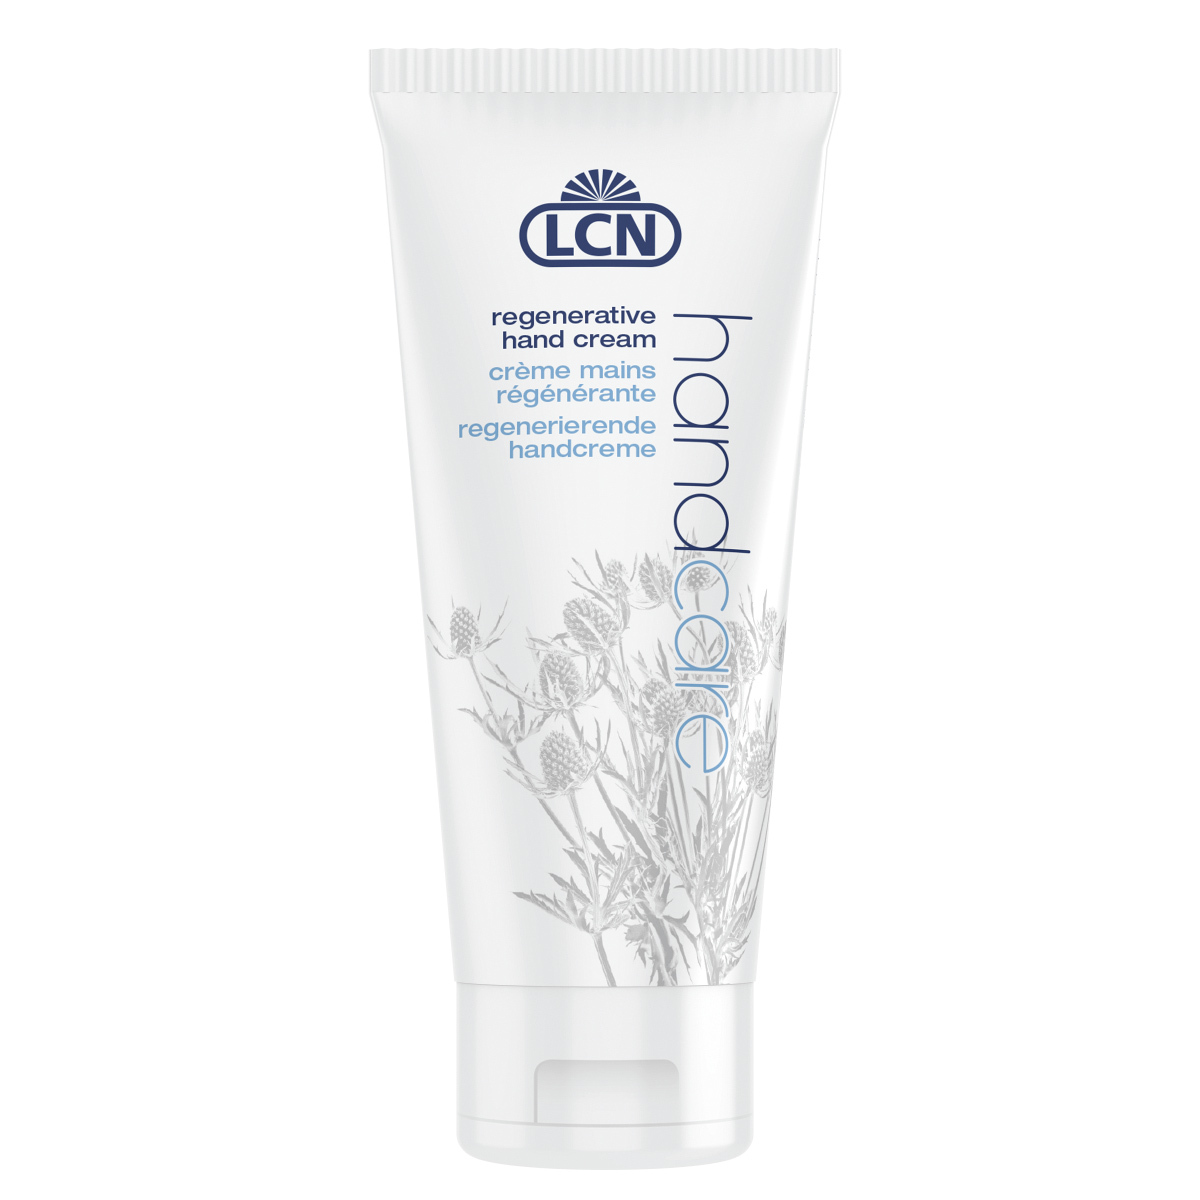 Regenerative hand cream 50ml 91105